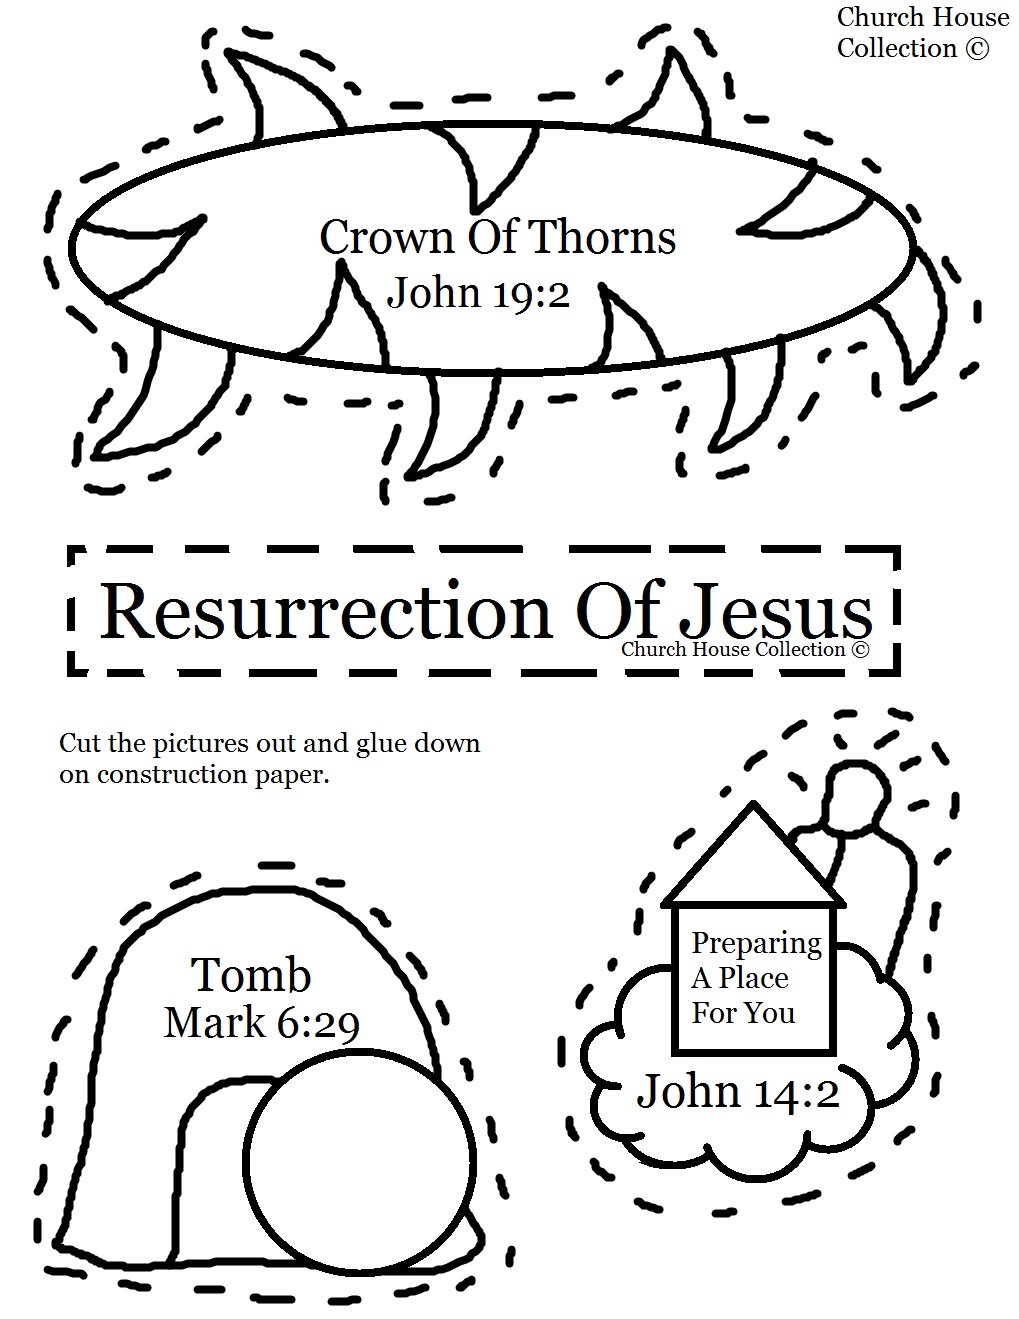 Church House Collection Blog: Resurrection of Jesus Cut